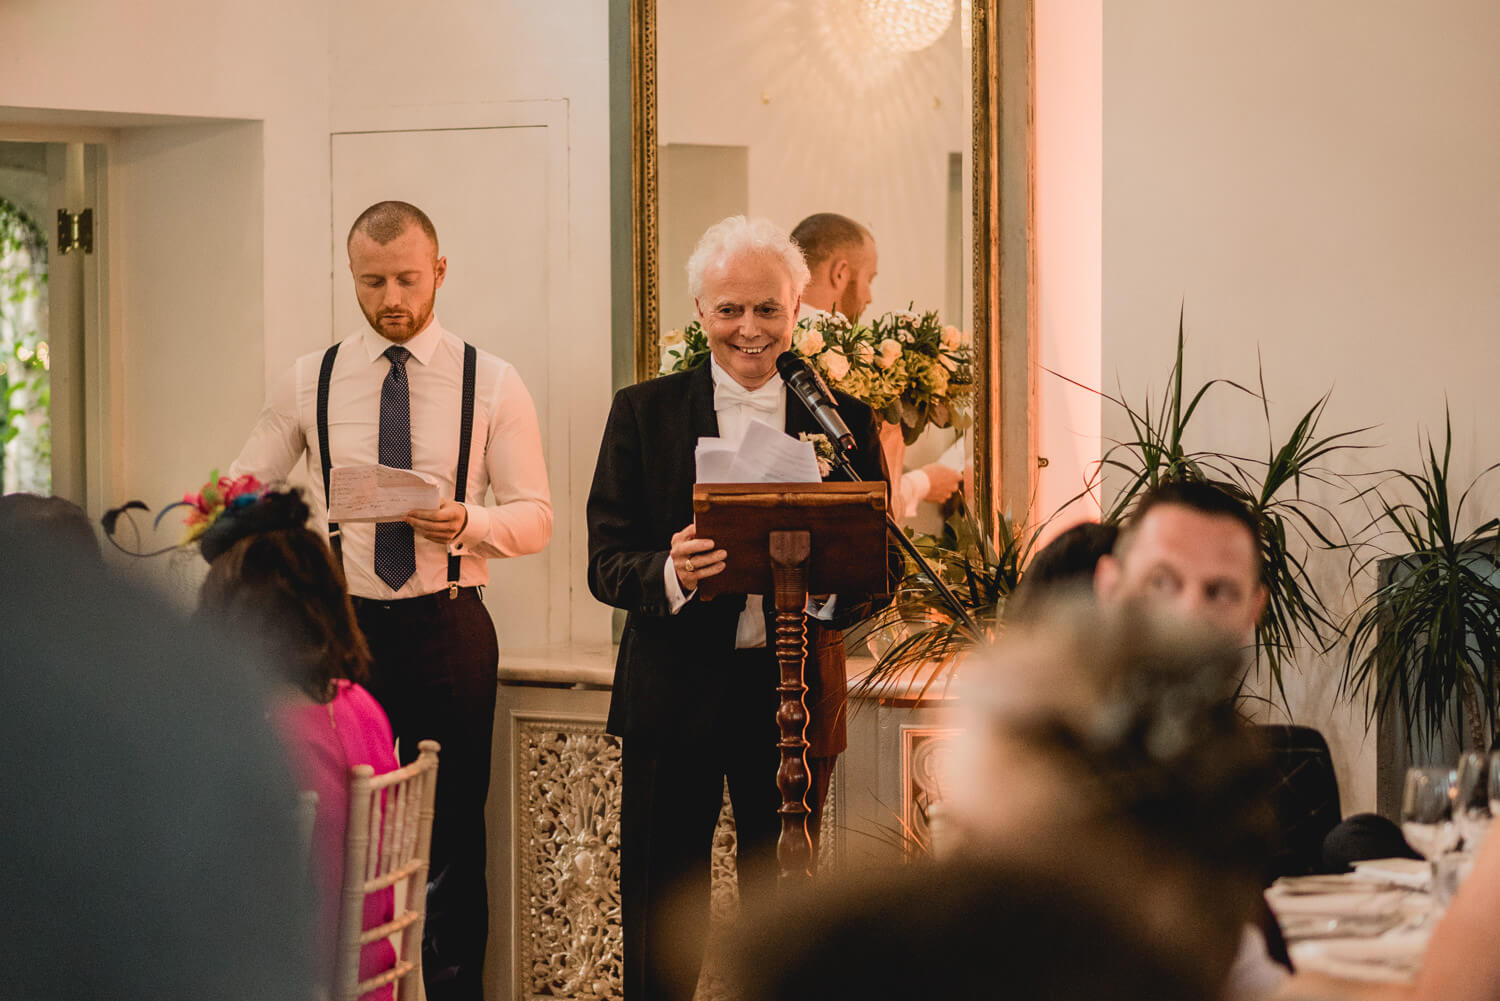 Wedding Photos at Gloster House in Ireland